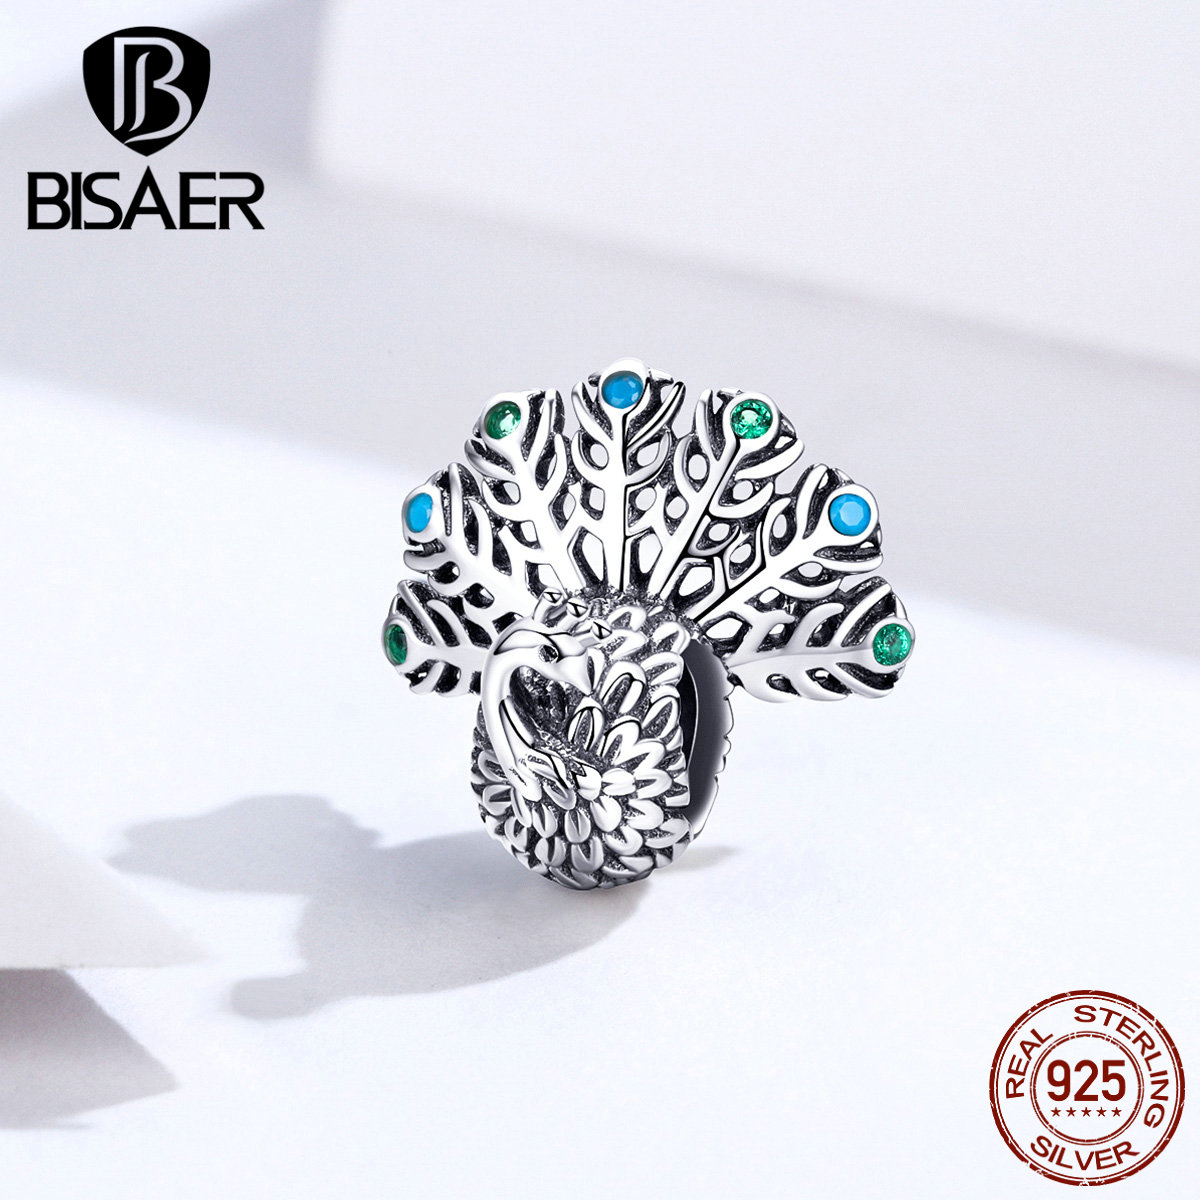 Peacock Charms BISAER Hot Sale 925 Sterling Silver Pure Peacock Beads Charms Fit Charm Bracelets Silver 925 Jewelry ECC1260